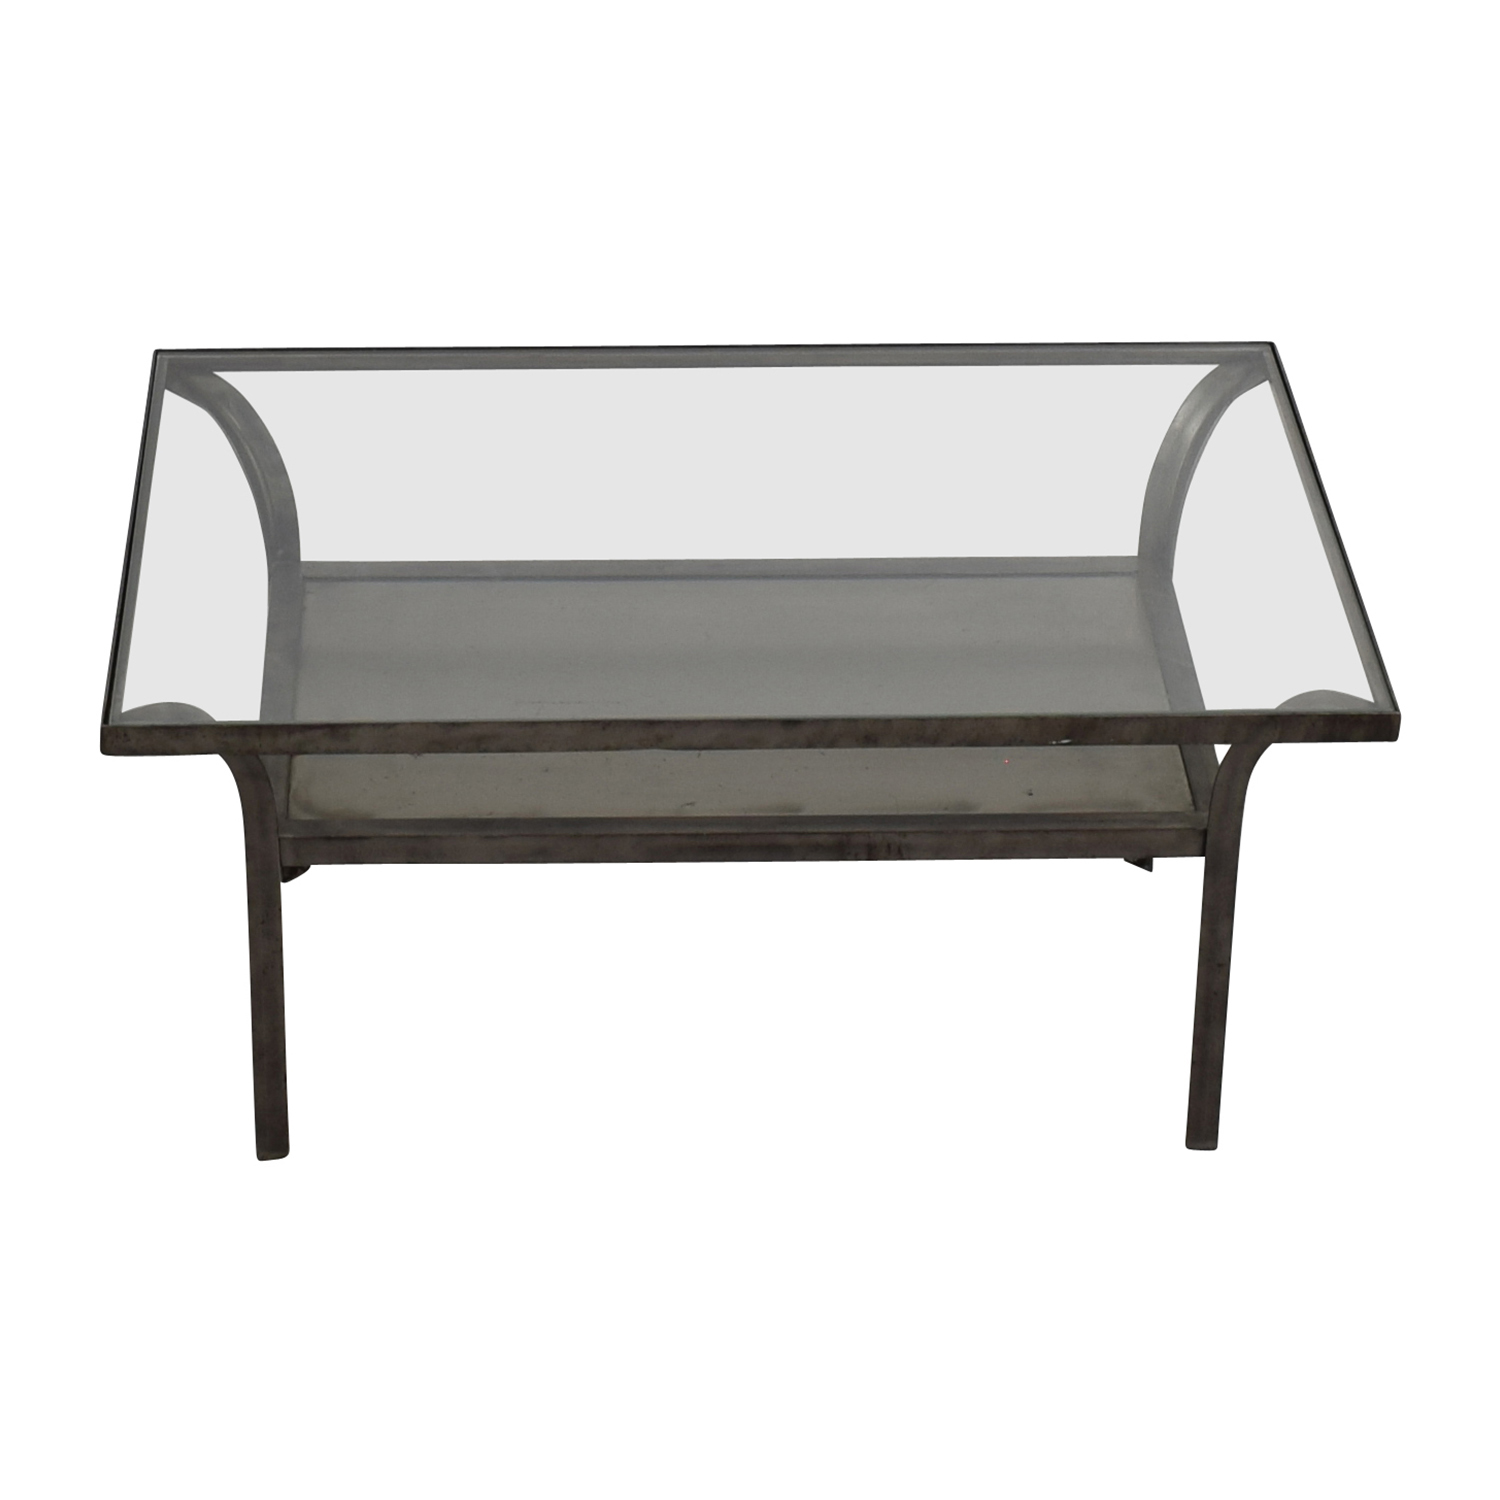 Crate and Barrel Crate and Barrel Metal and Glass Coffee Table Tables